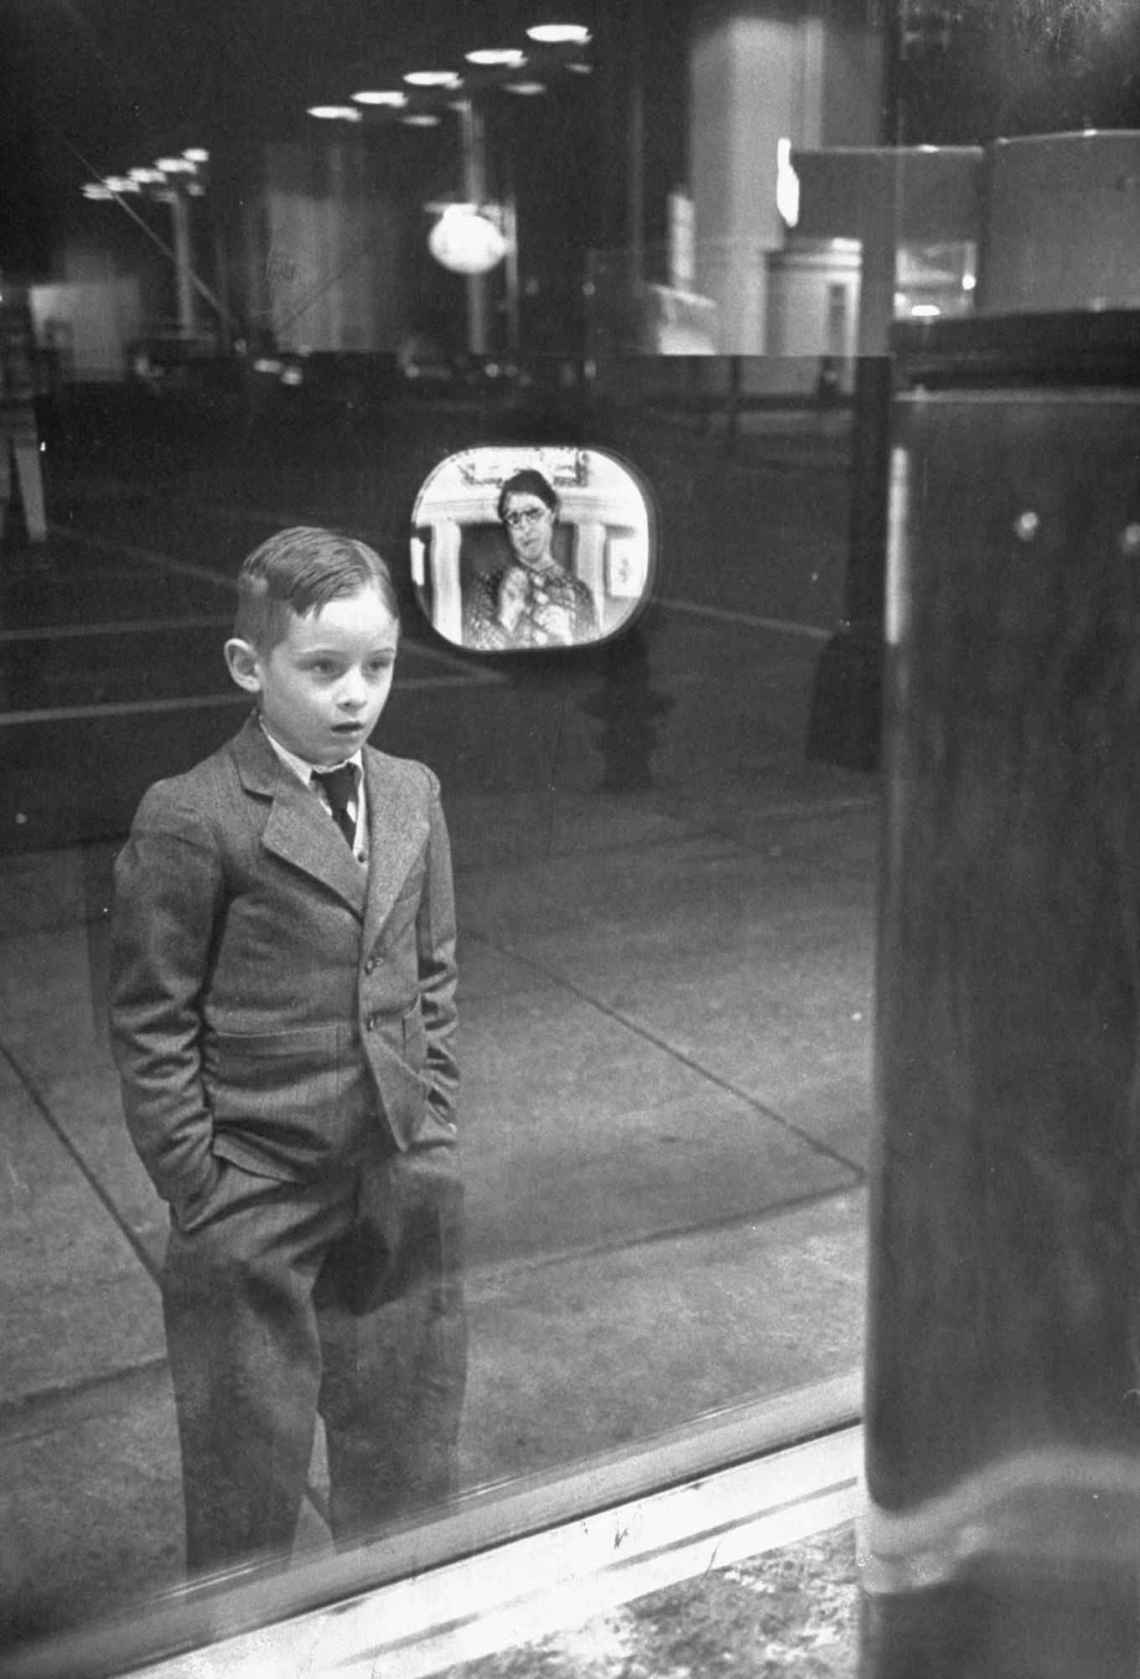 Every Picture Tells A Story: Child Sees Television for the First Time